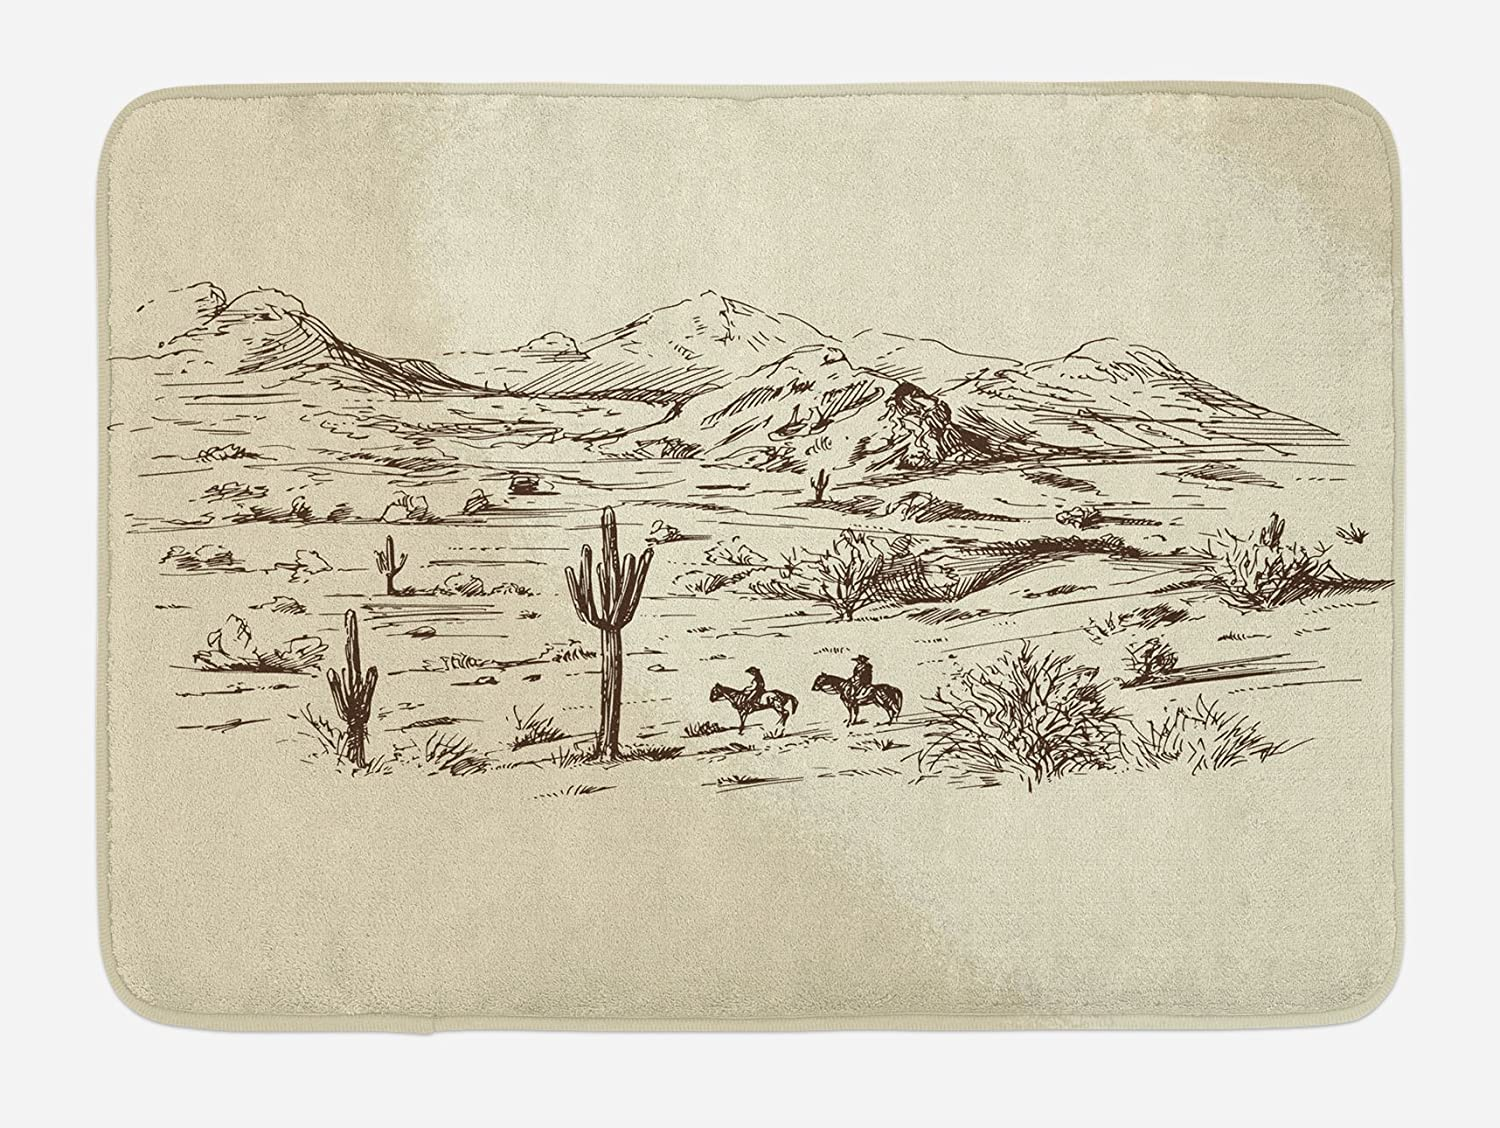 "Ambesonne Western Bath Mat, Wild West Landscape Illustration with Mountains Desert Plants Cowboys on Horses, Plush Bathroom Decor Mat with Non Slip Backing, 29.5"" X 17.5"", Beige Black"